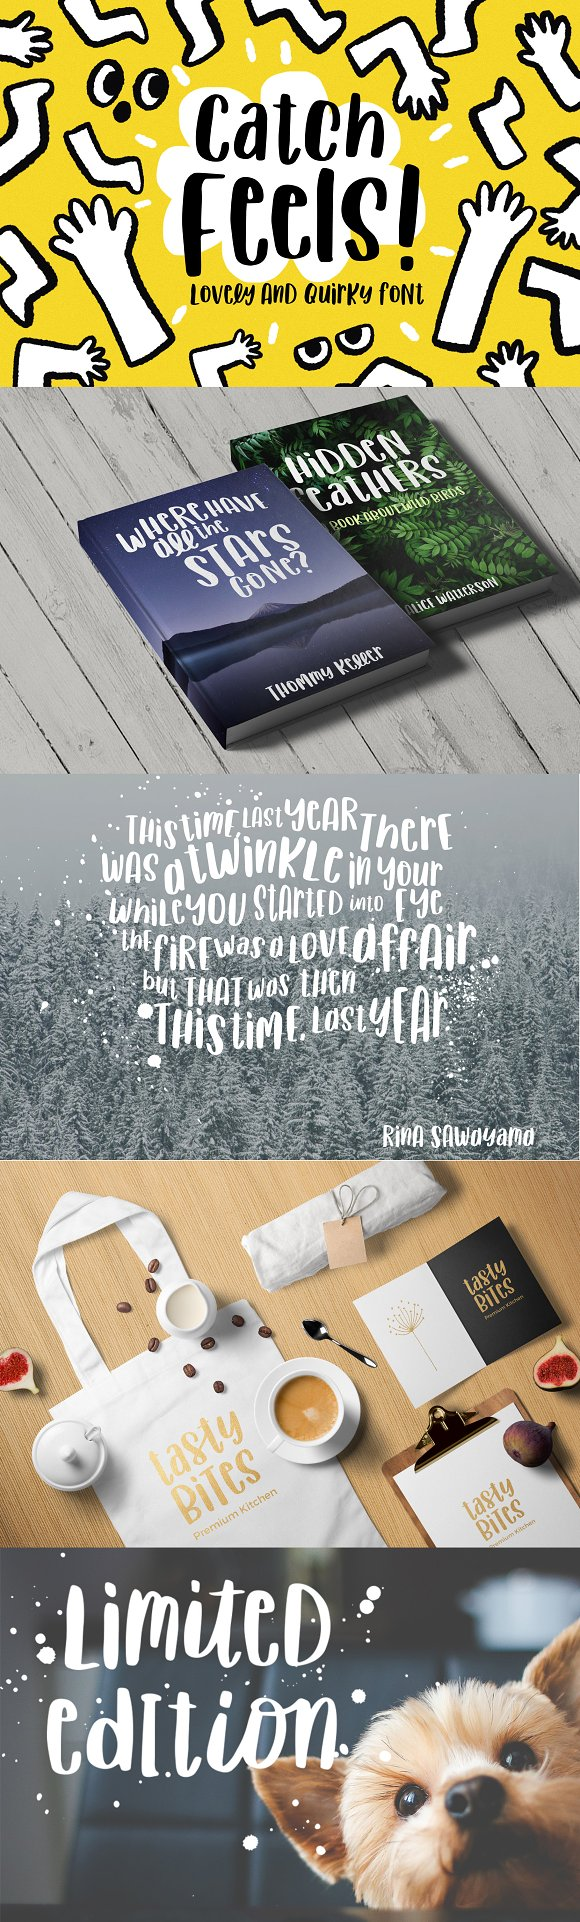 Catch Feels Lovely And Quirky Font